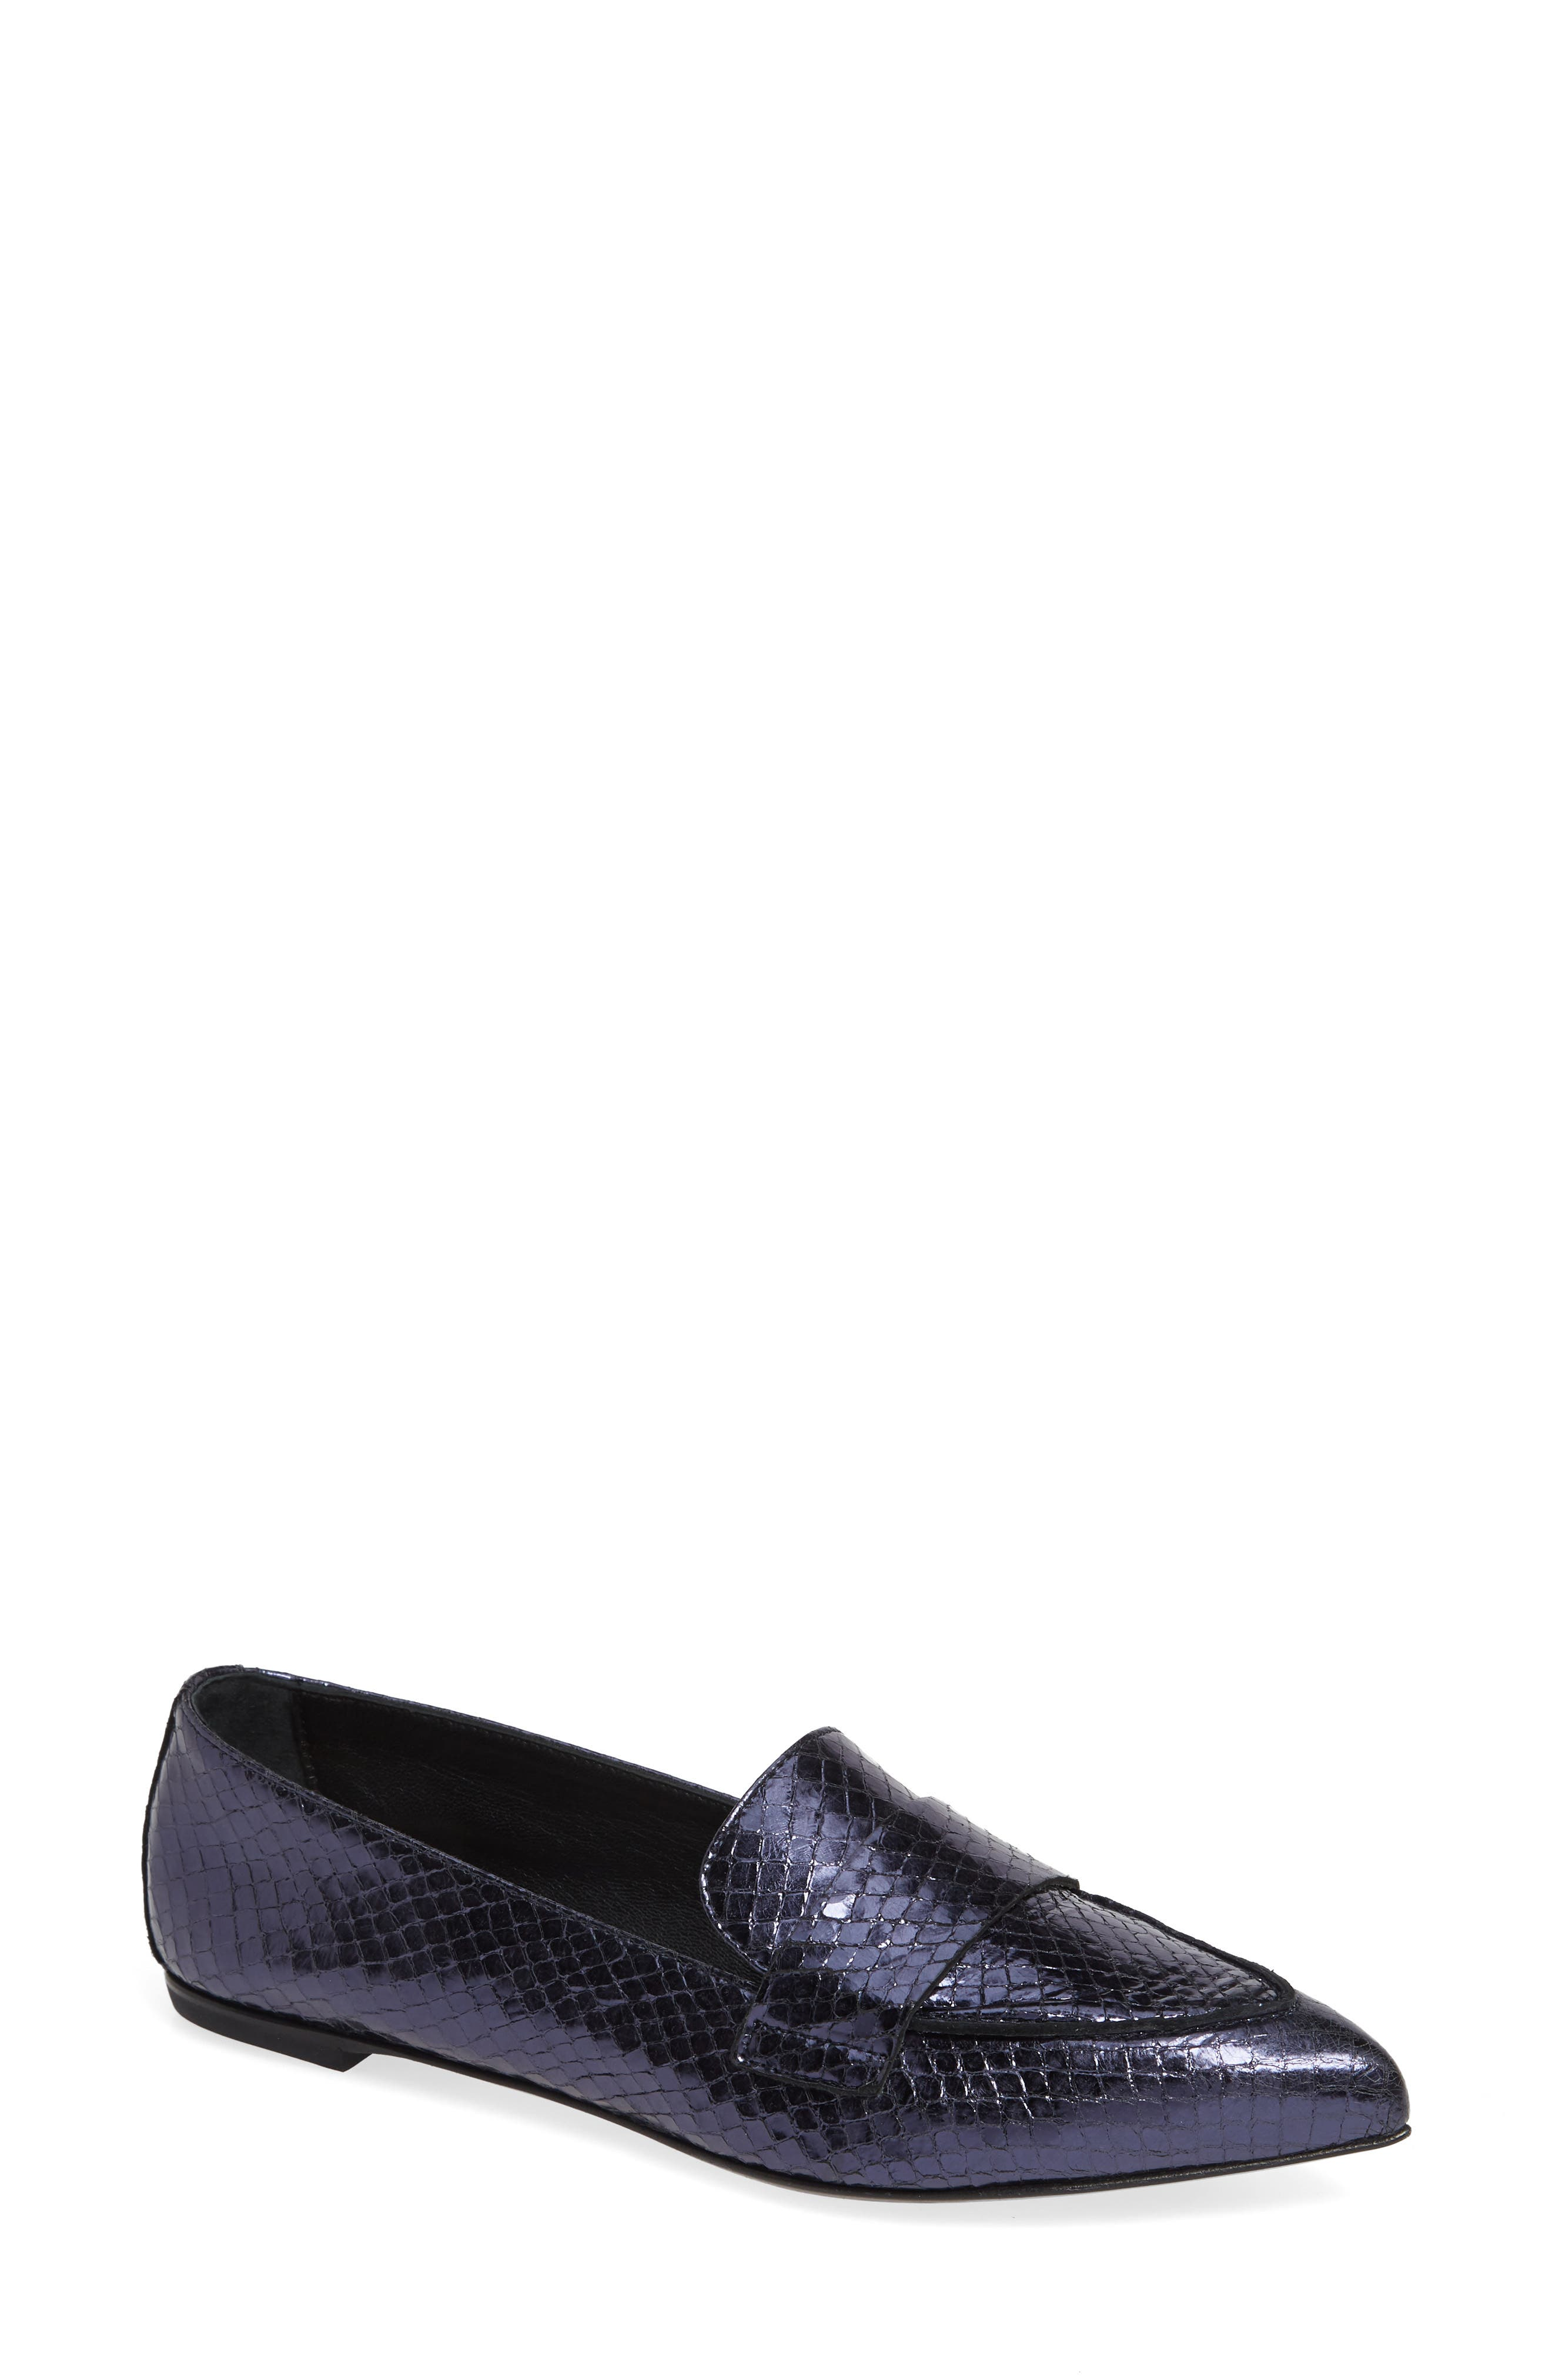 Agl Softy Pointy Toe Moccasin Loafer, Blue